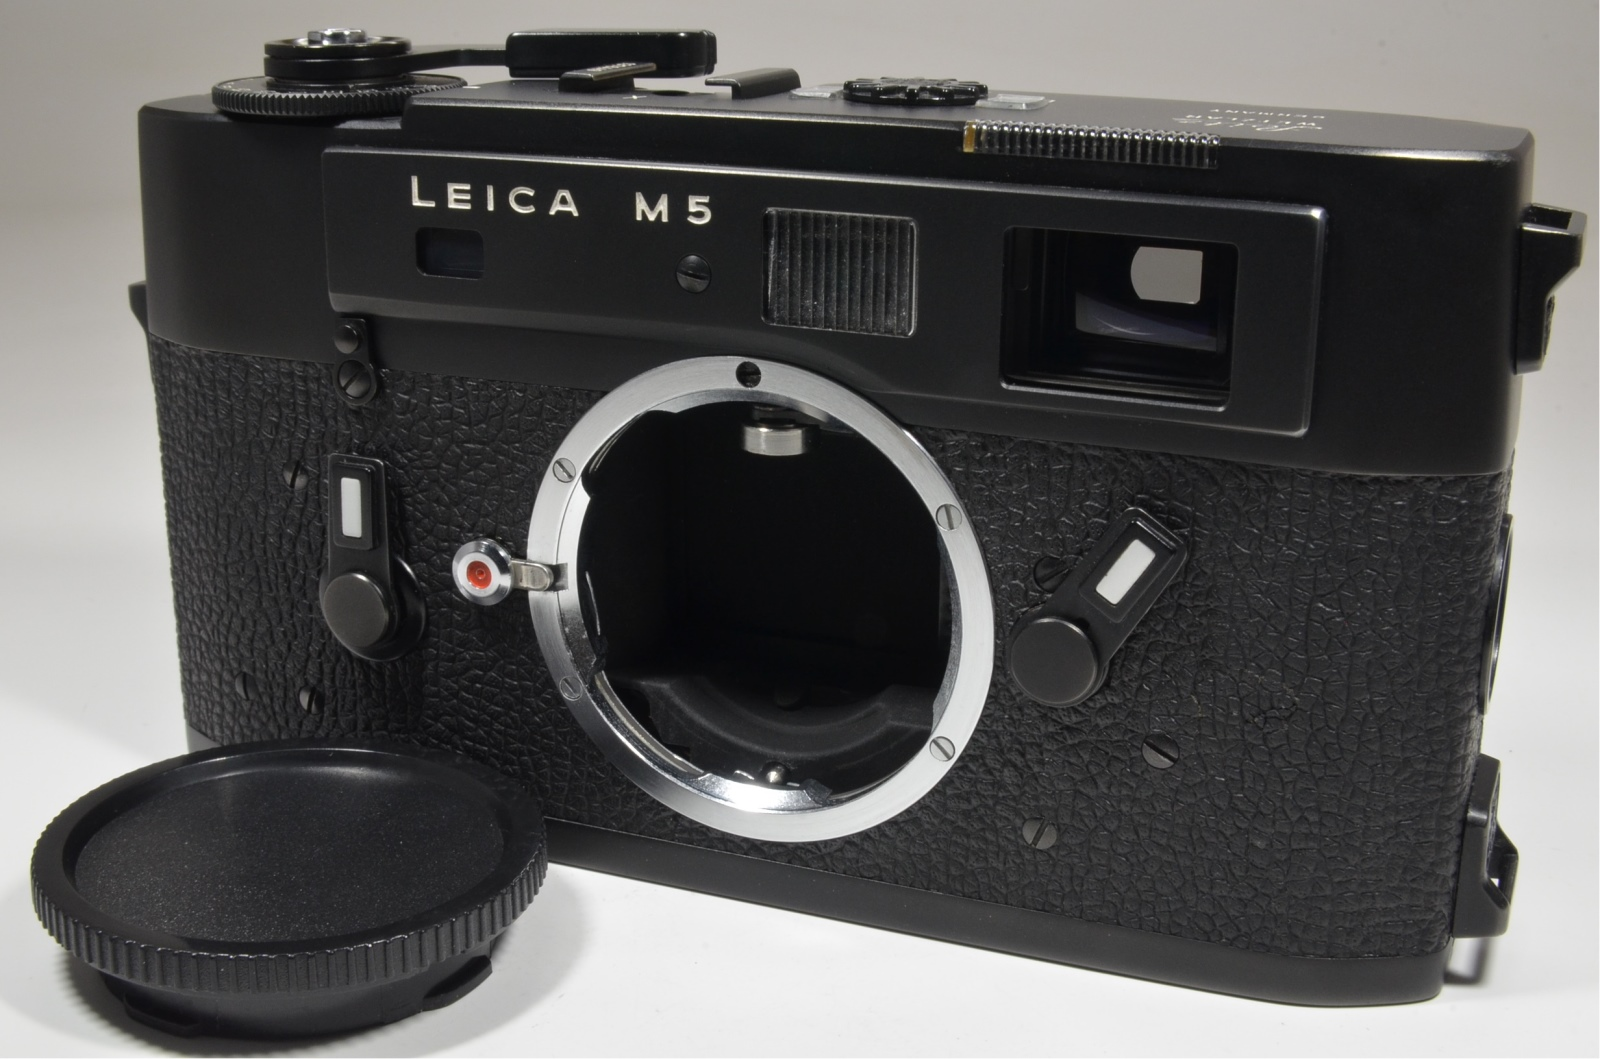 leica m5 black 3 lug year 1973 s/n 1376449 rangefinder camera